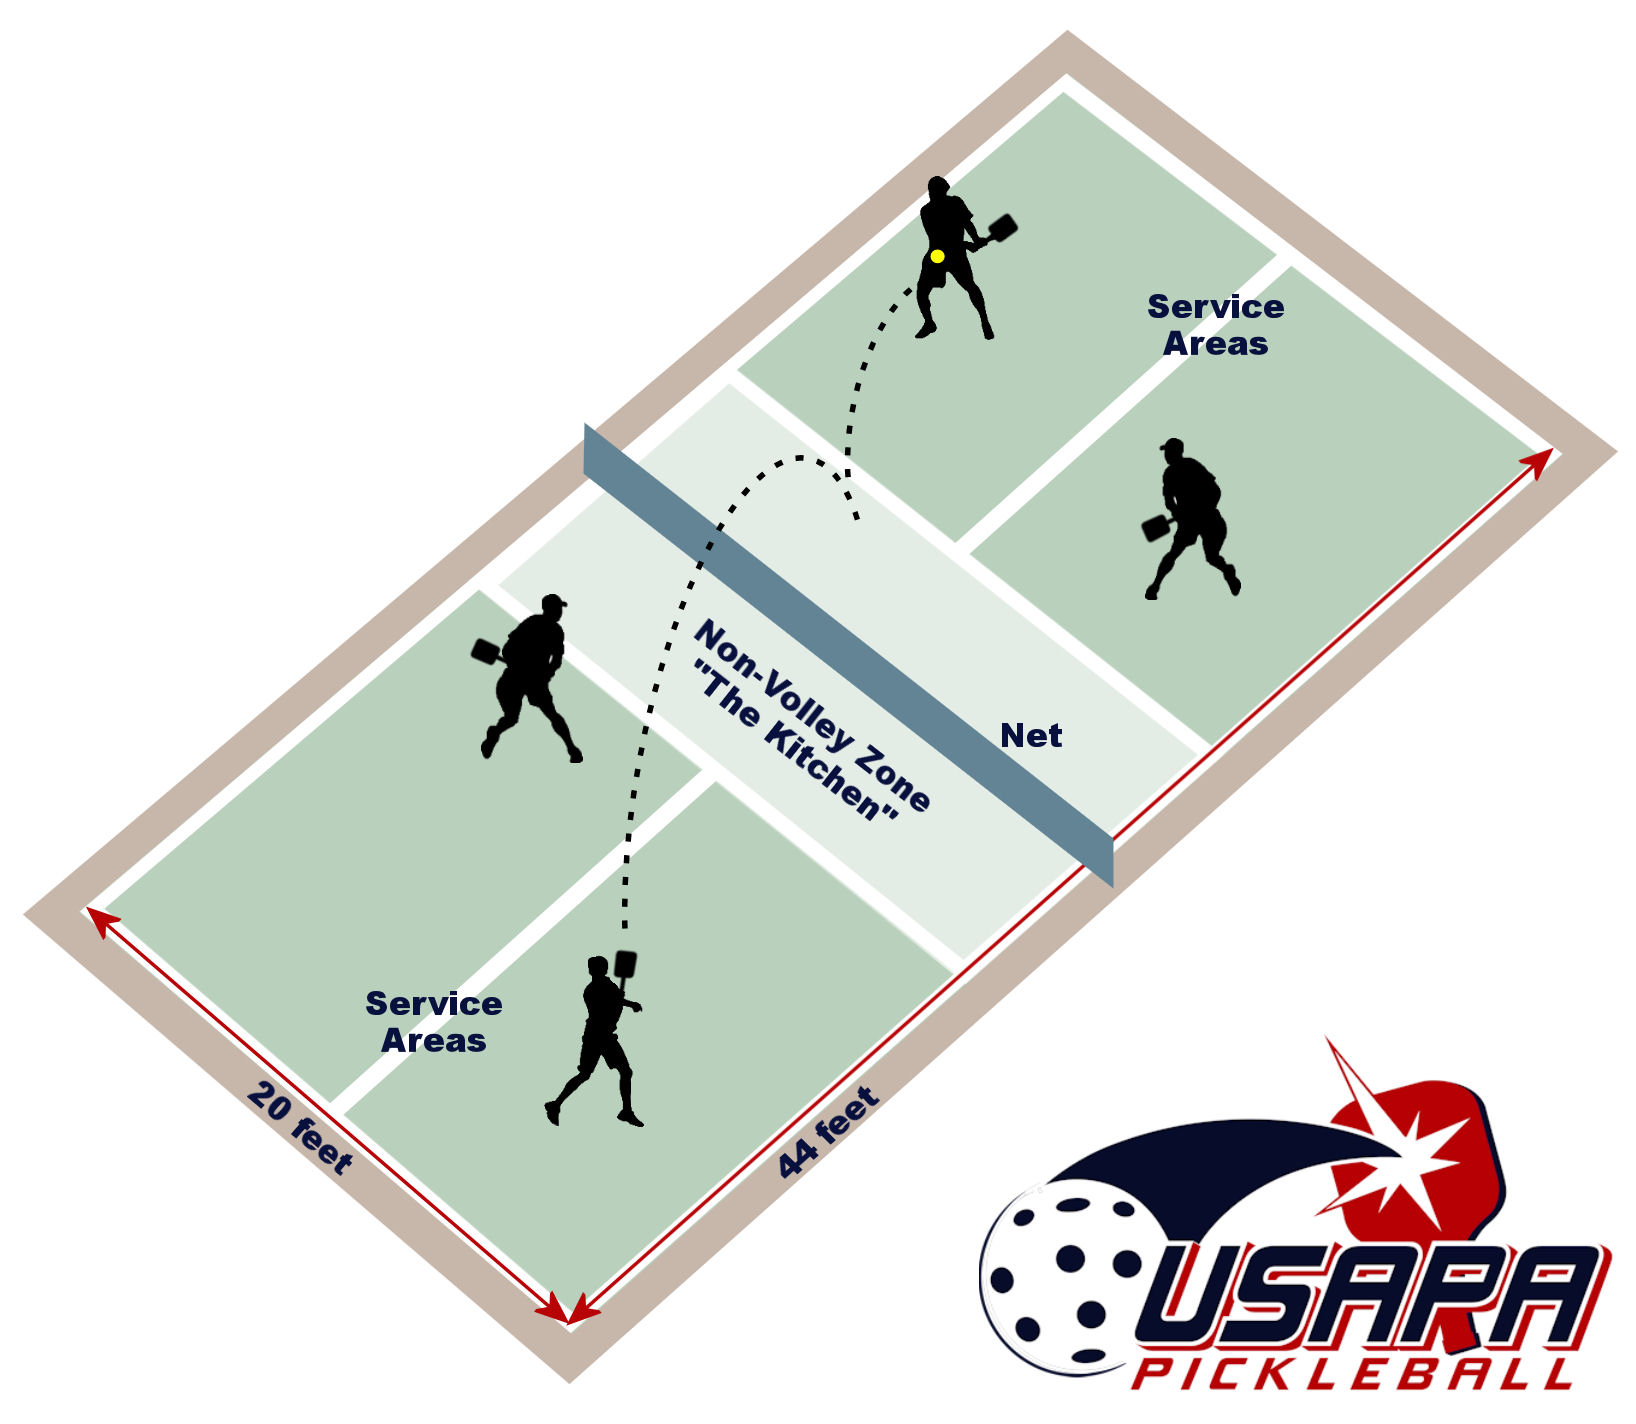 pickleball court illustration